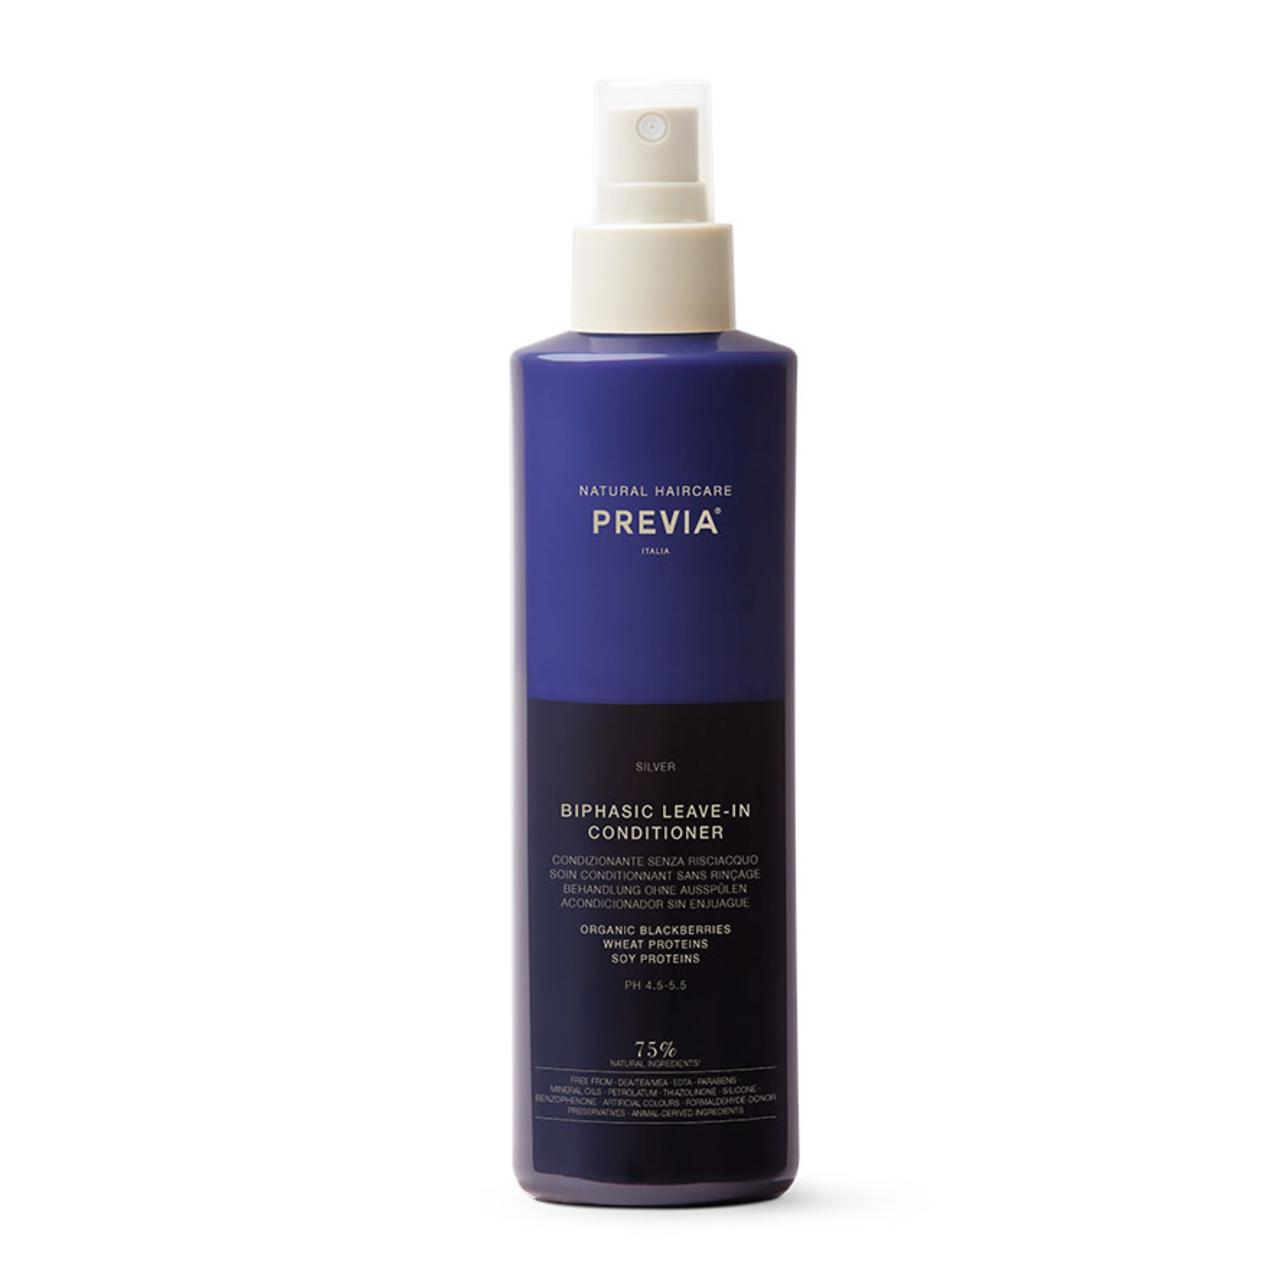 Previa Silver Biphasic Leave-In Conditioner, 4.590 kr. Fæst í versluninni …